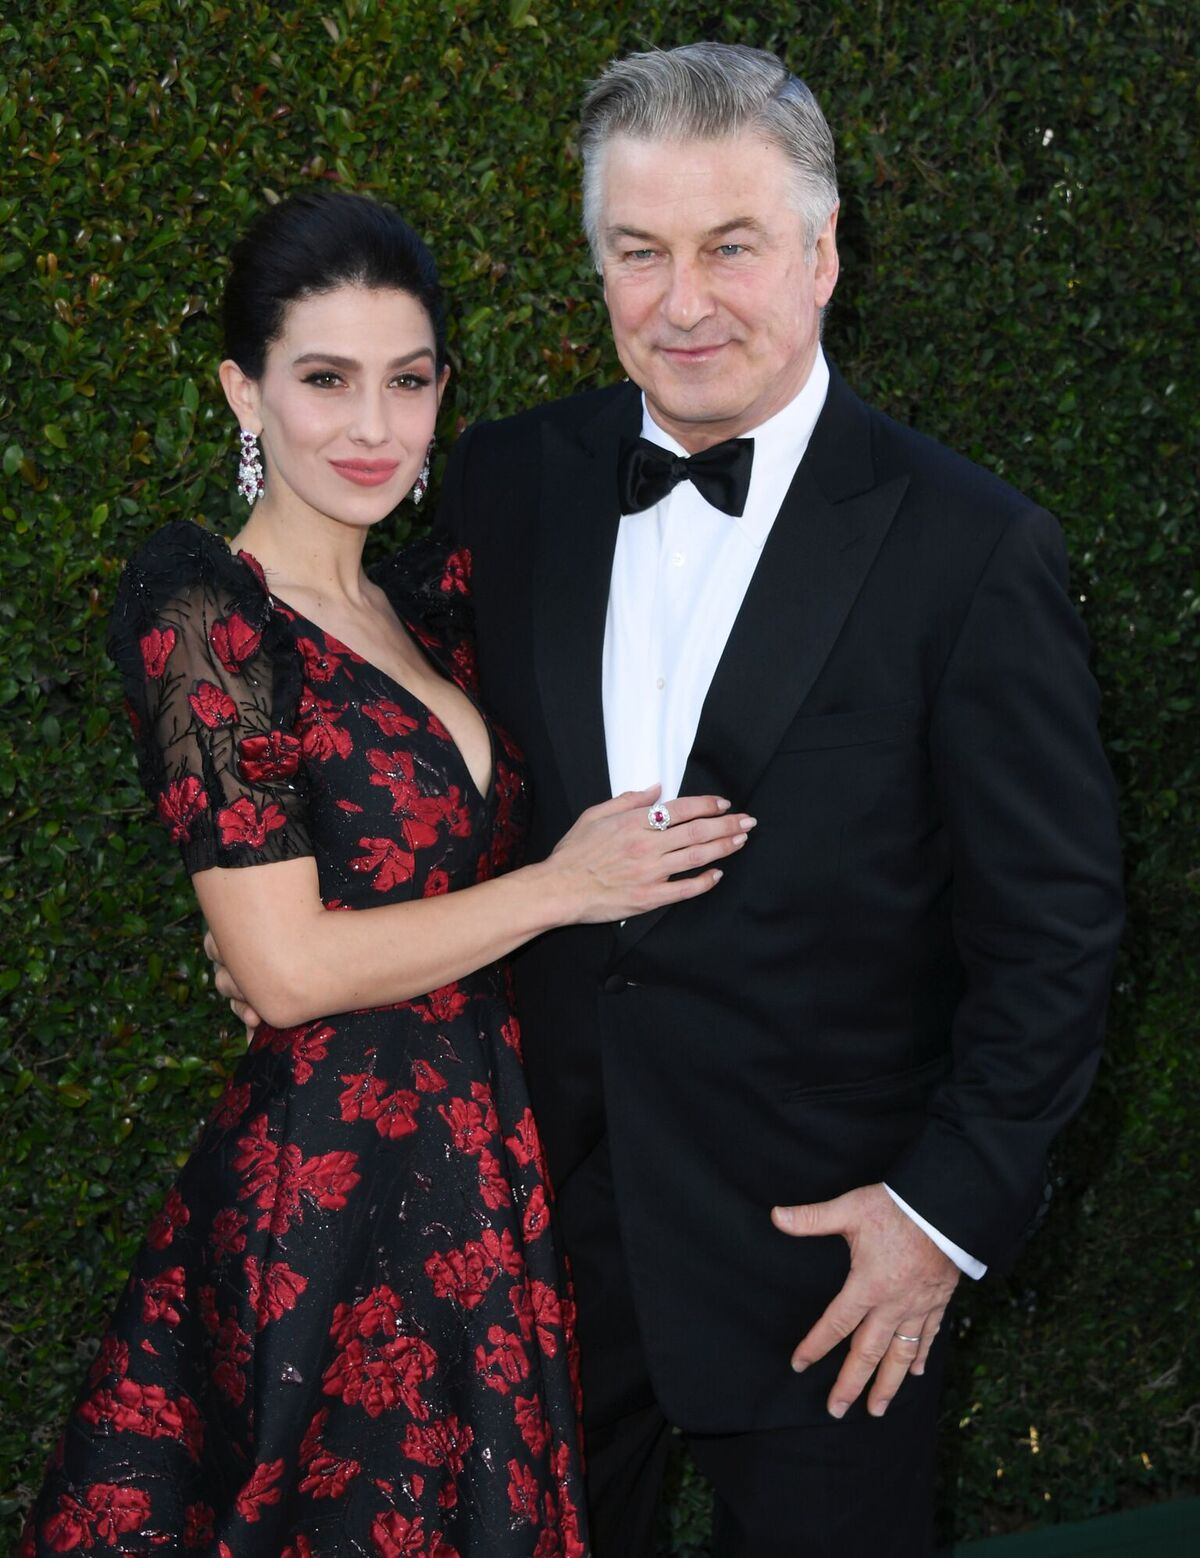 Hilaria and Alec Baldwin at the 25th Annual Screen Actors Guild Awards on January 27, 2019, in Los Angeles, California | Photo: Jon Kopaloff/Getty Images